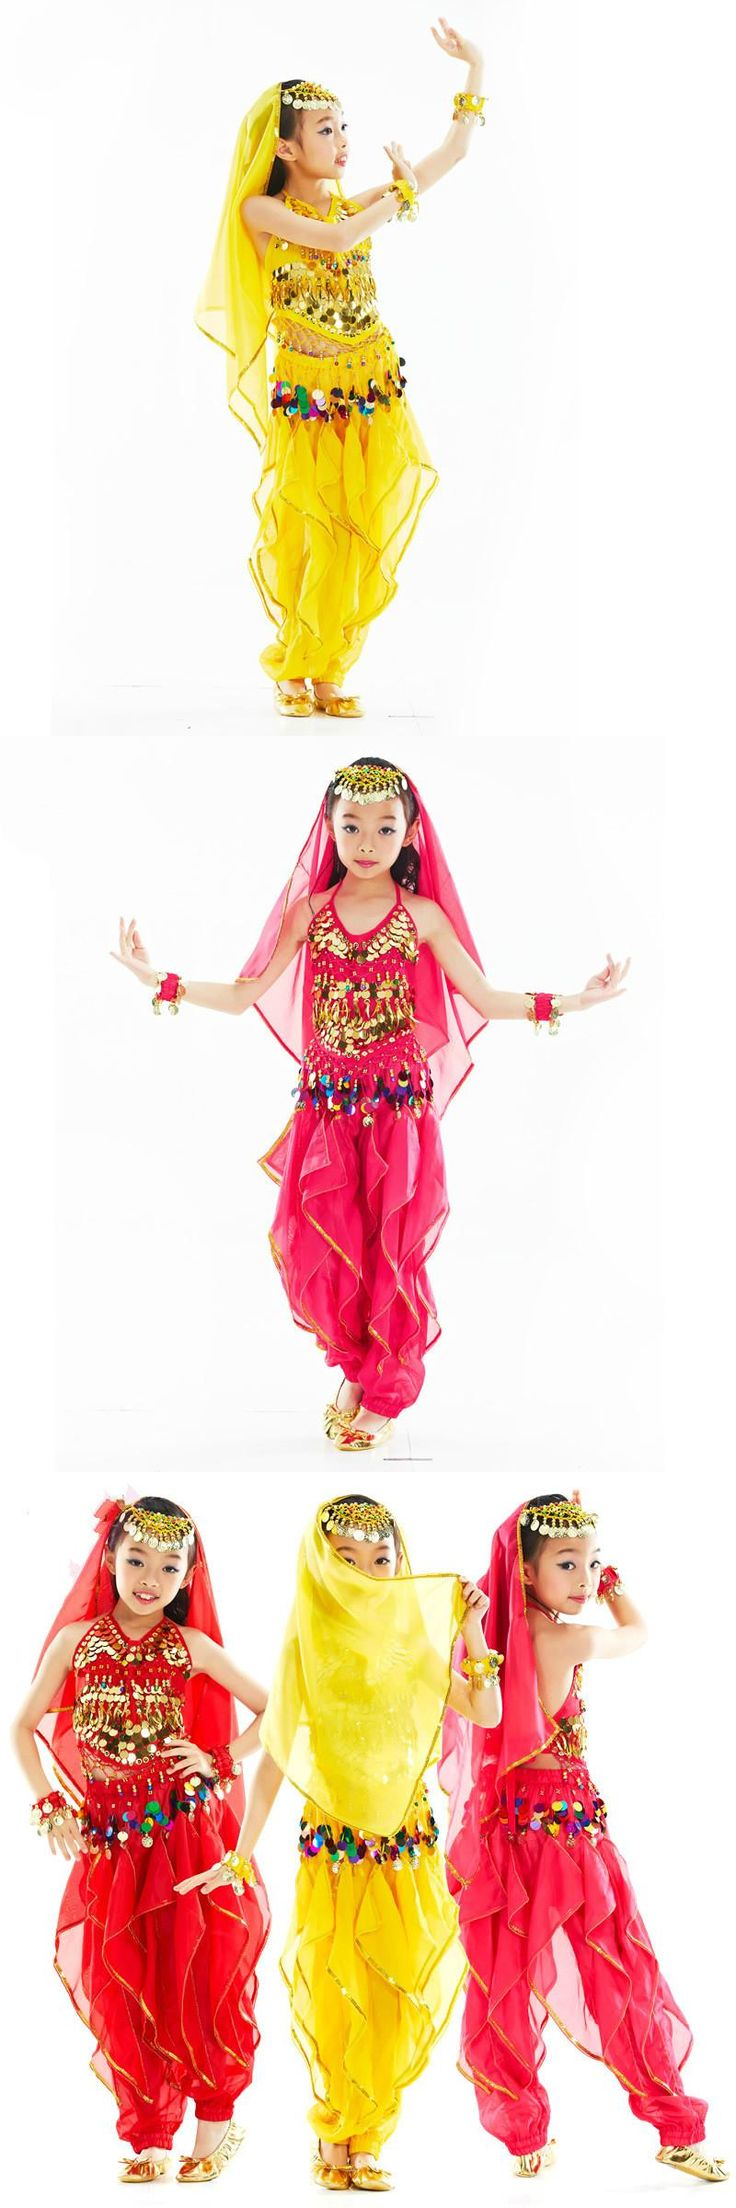 Children 3 Color Belly Dance Costume Bollywood Costume Indian Dress Bellydance Dress Belly Dancing Costume Sets